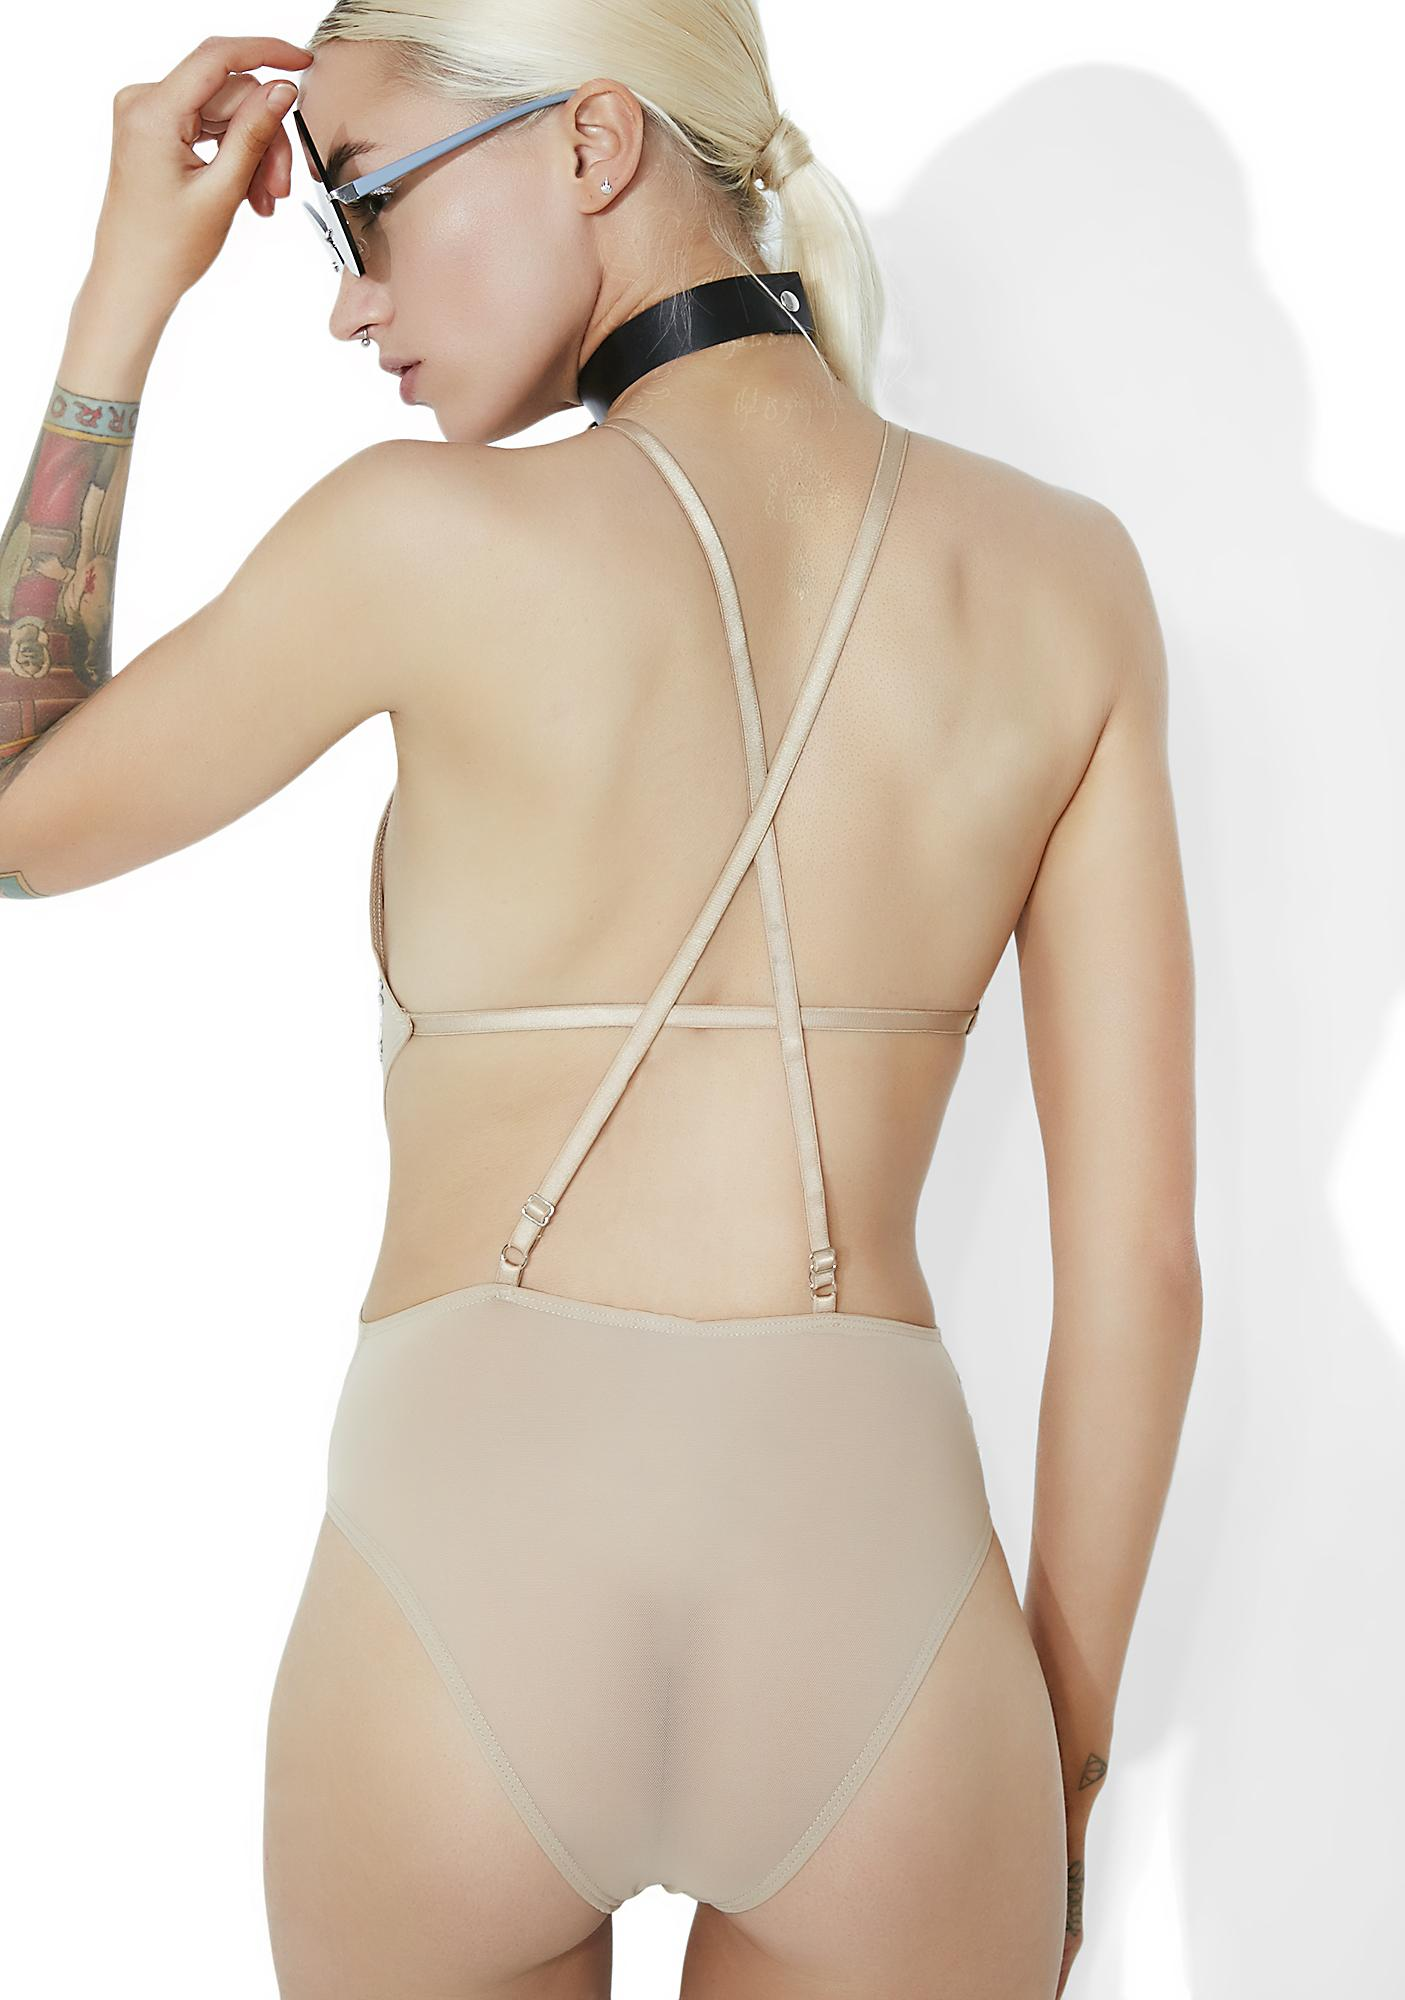 Crystalline Dreamz Sheer Bodysuit